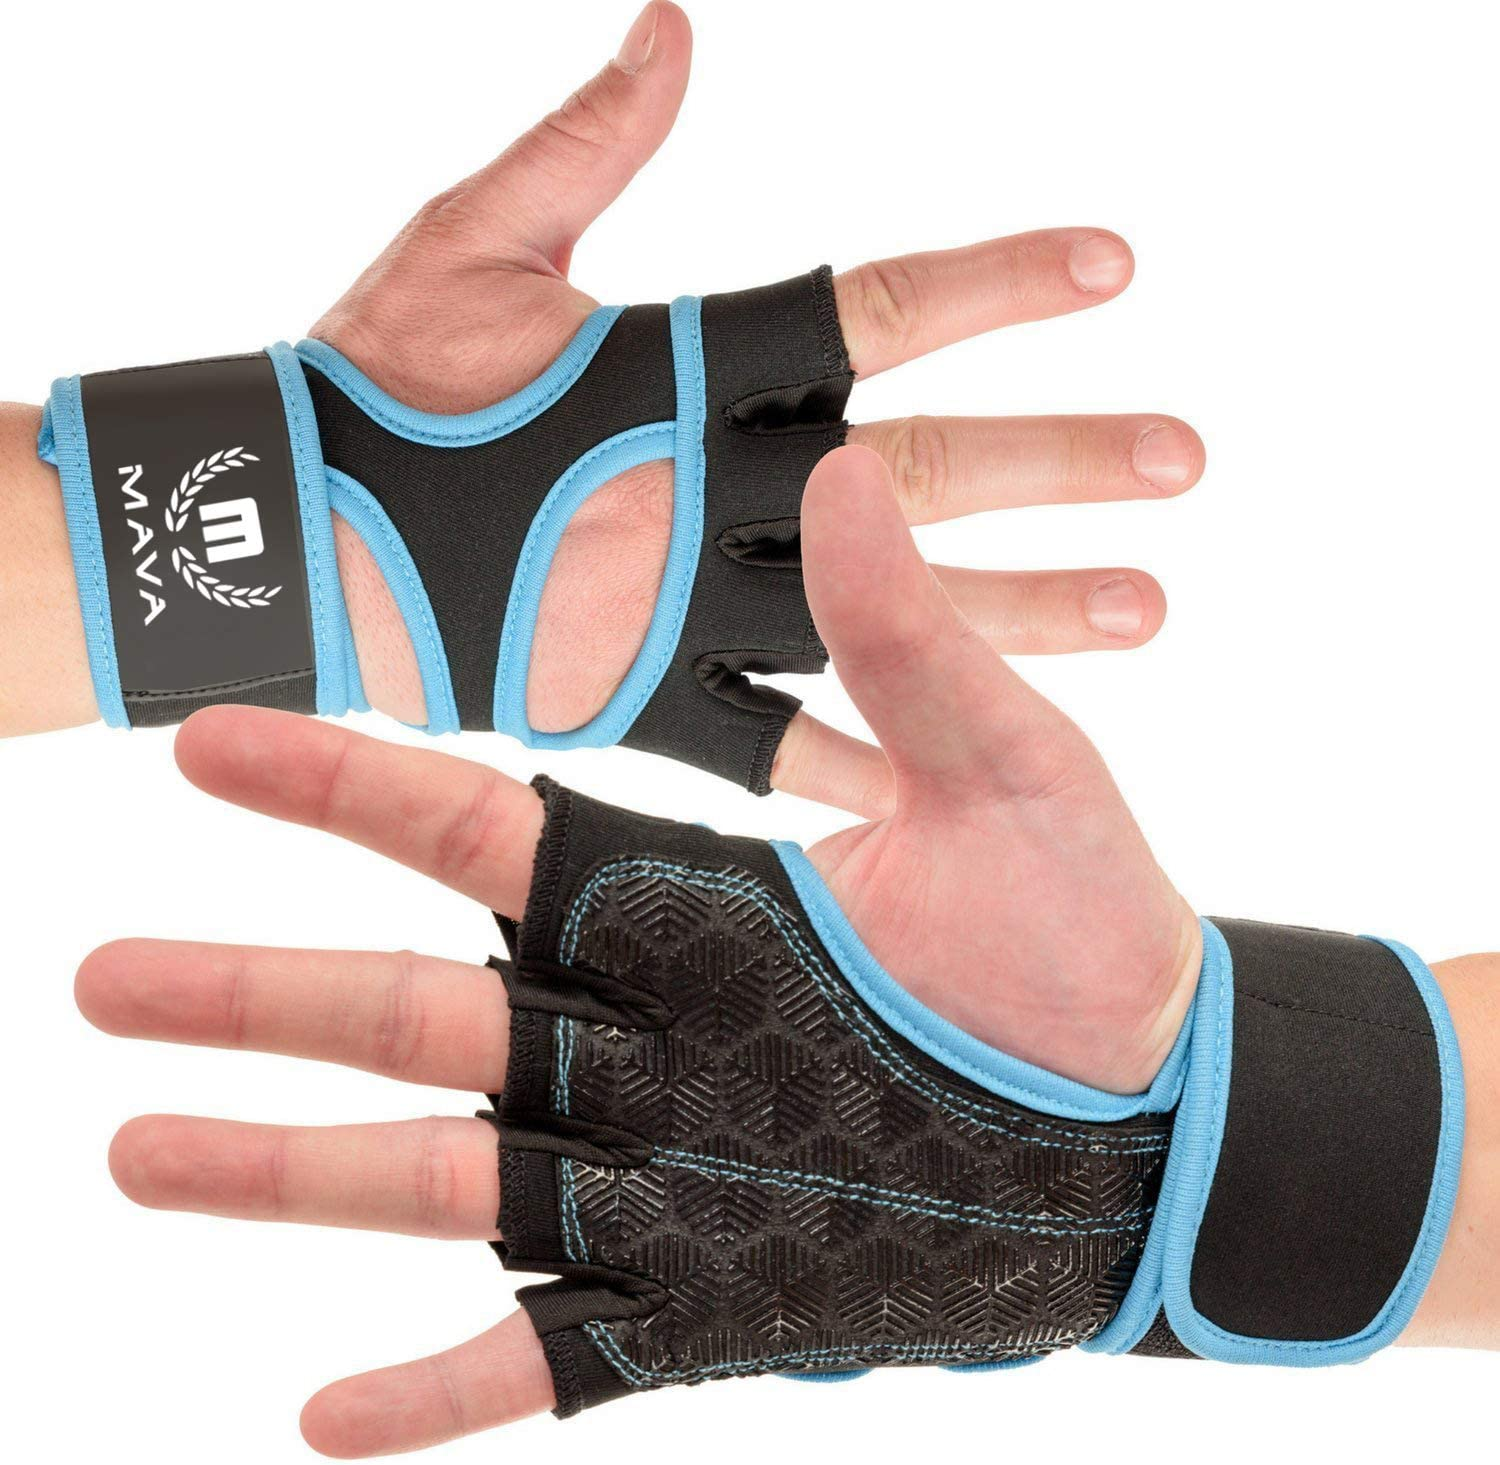 Cross Training Gloves with Wrist Workouts WOD for Support Max Max 54% OFF 57% OFF Gym